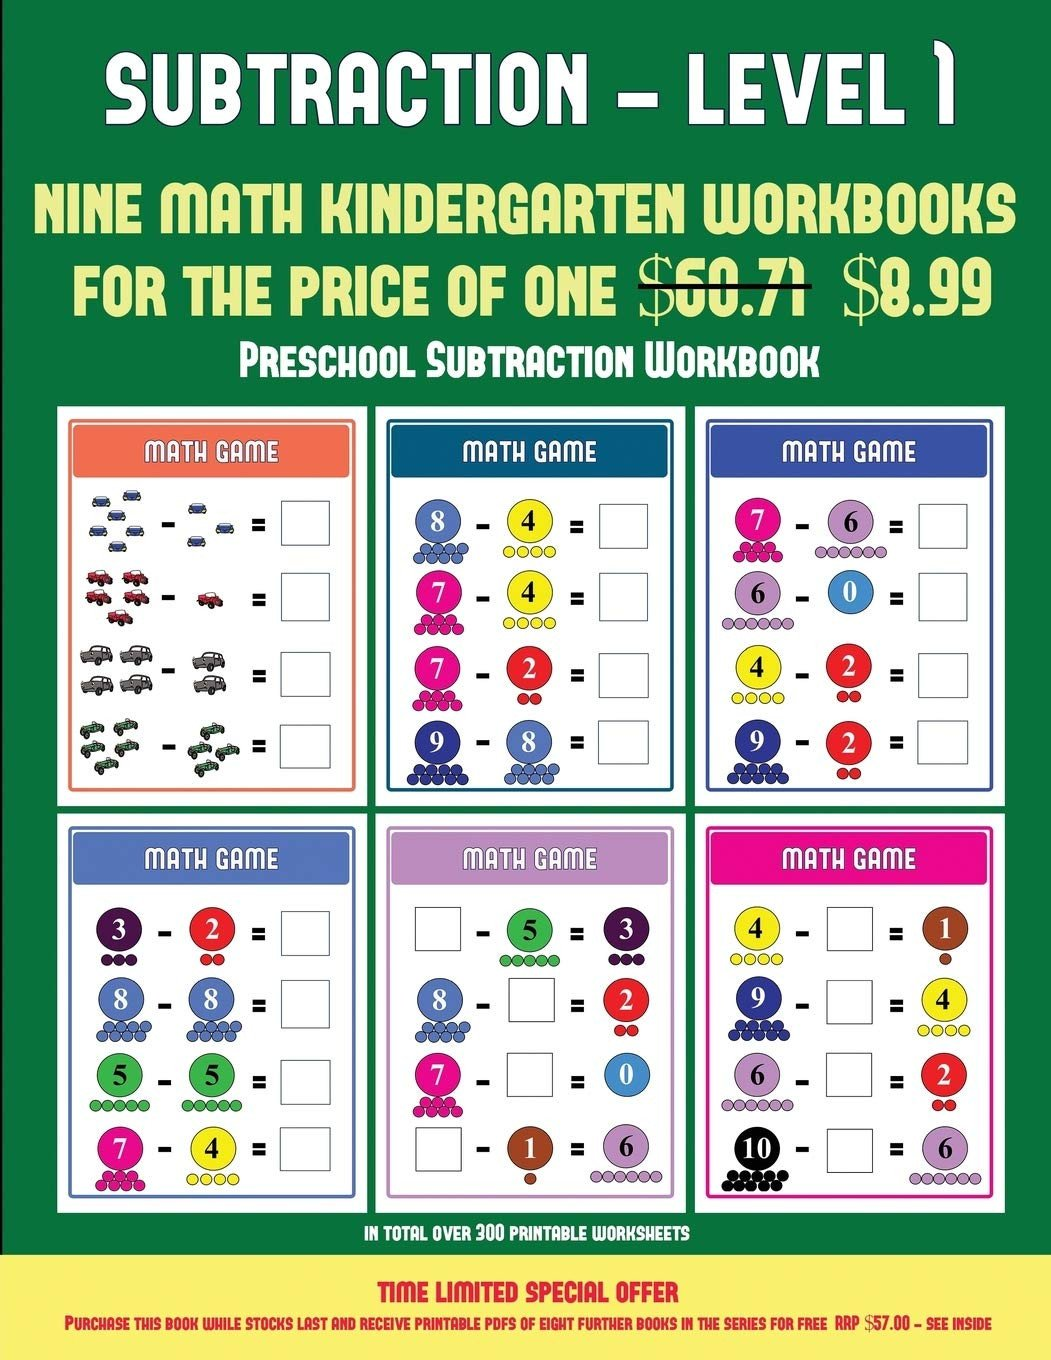 Kindergarten Subtraction Worksheets Free Printable Preschool Subtraction Workbook Kindergarten Subtraction